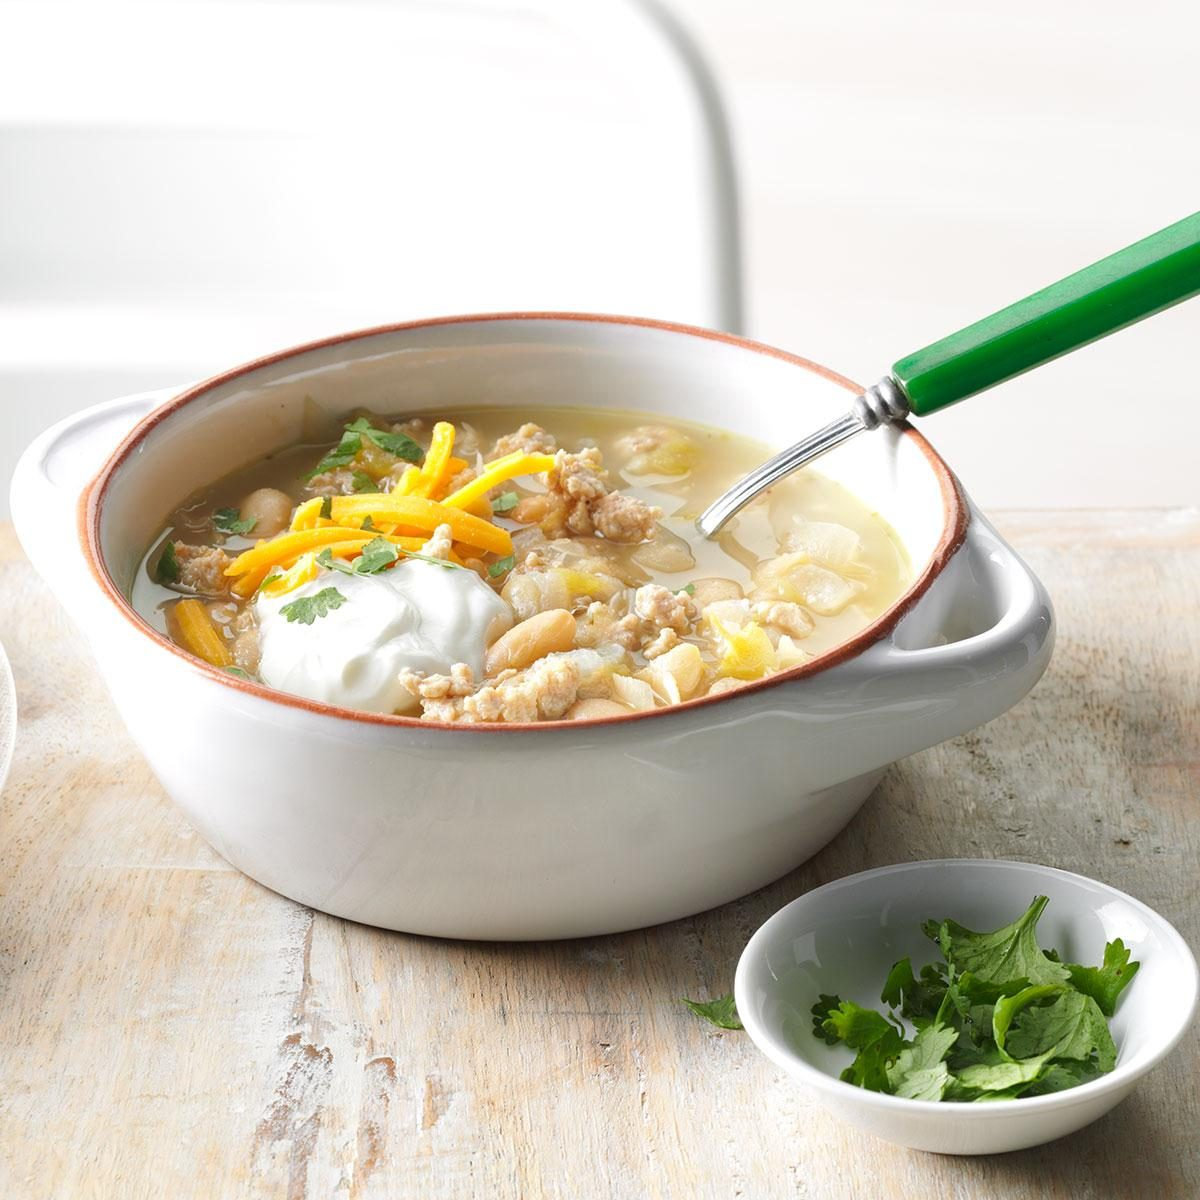 Saturday: Easy White Chicken Chili